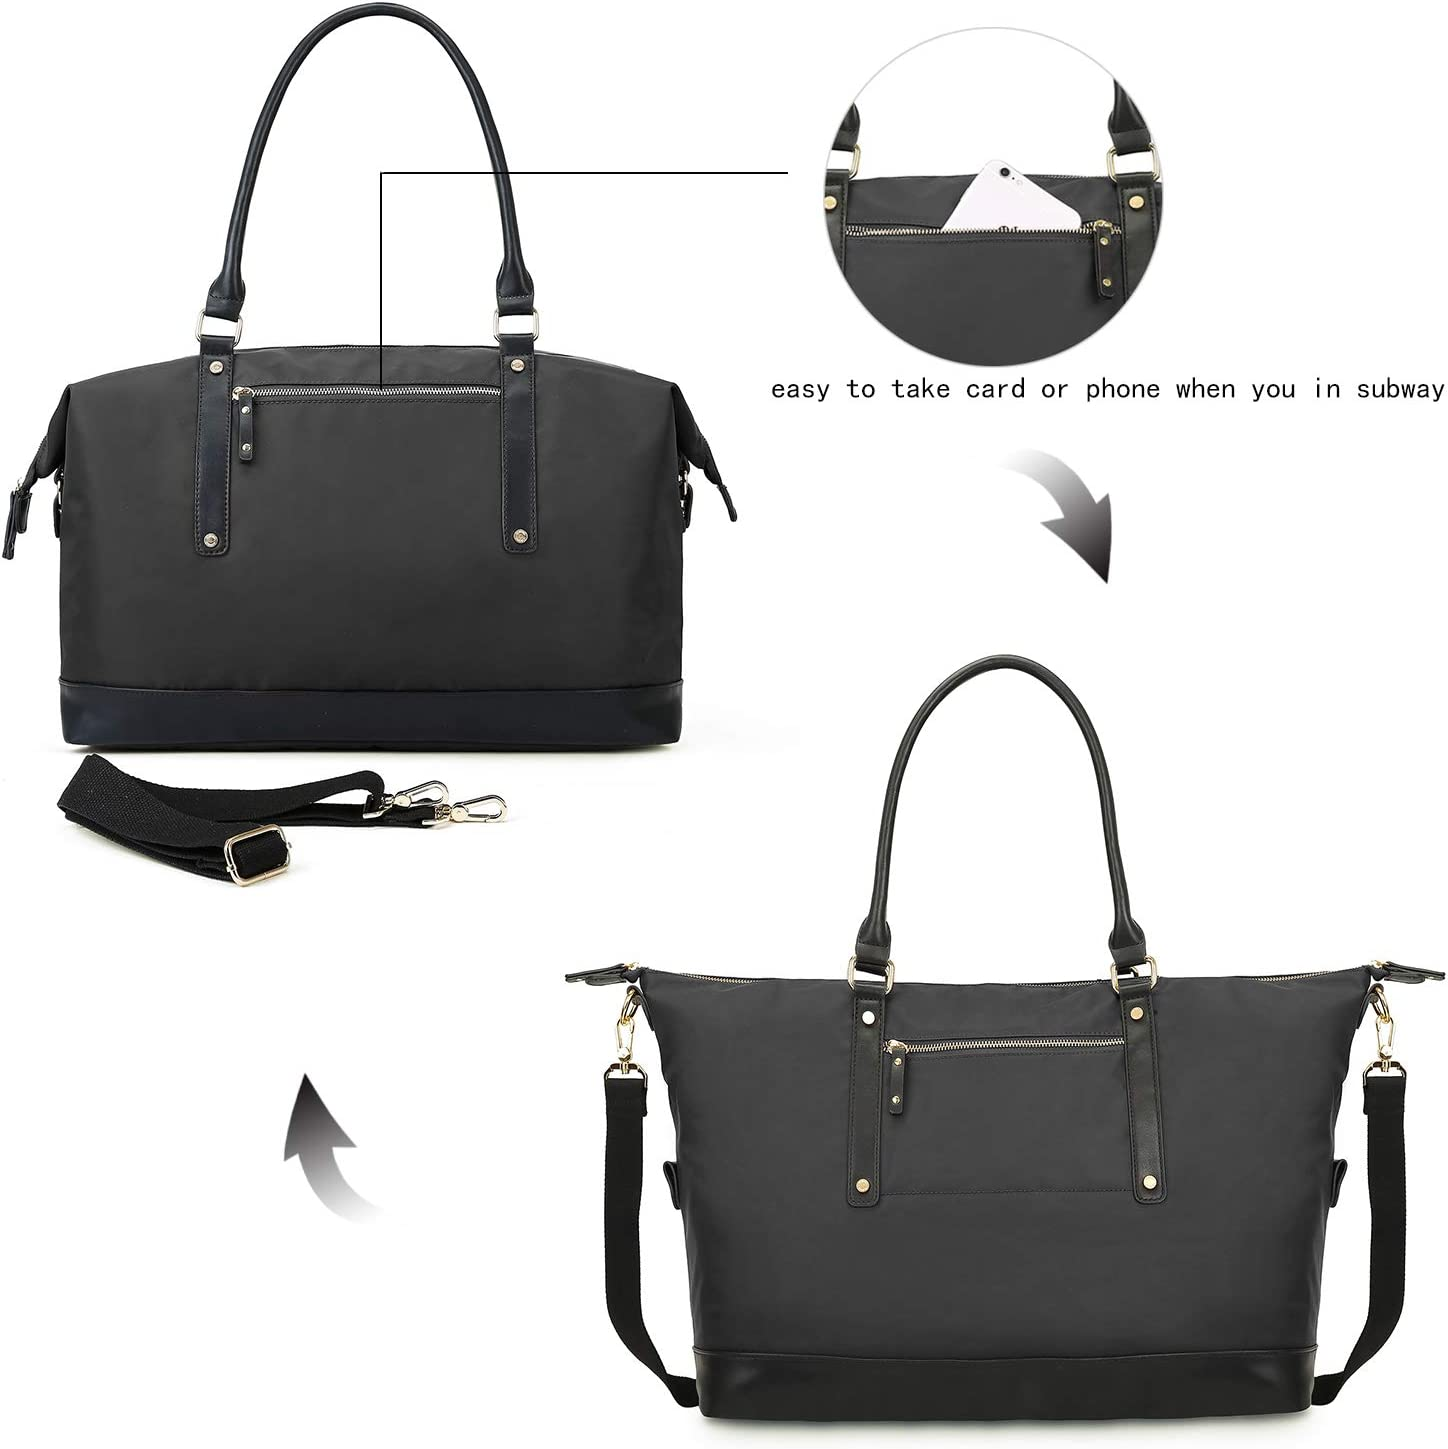 Overnight Holdall Travel Bag Tote Bag Black Cabin Carry On Bag for Women Features Deluxe YKK Zipper Premium Nylon Bag for Ladies Impero Viale Womens Weekend Bag